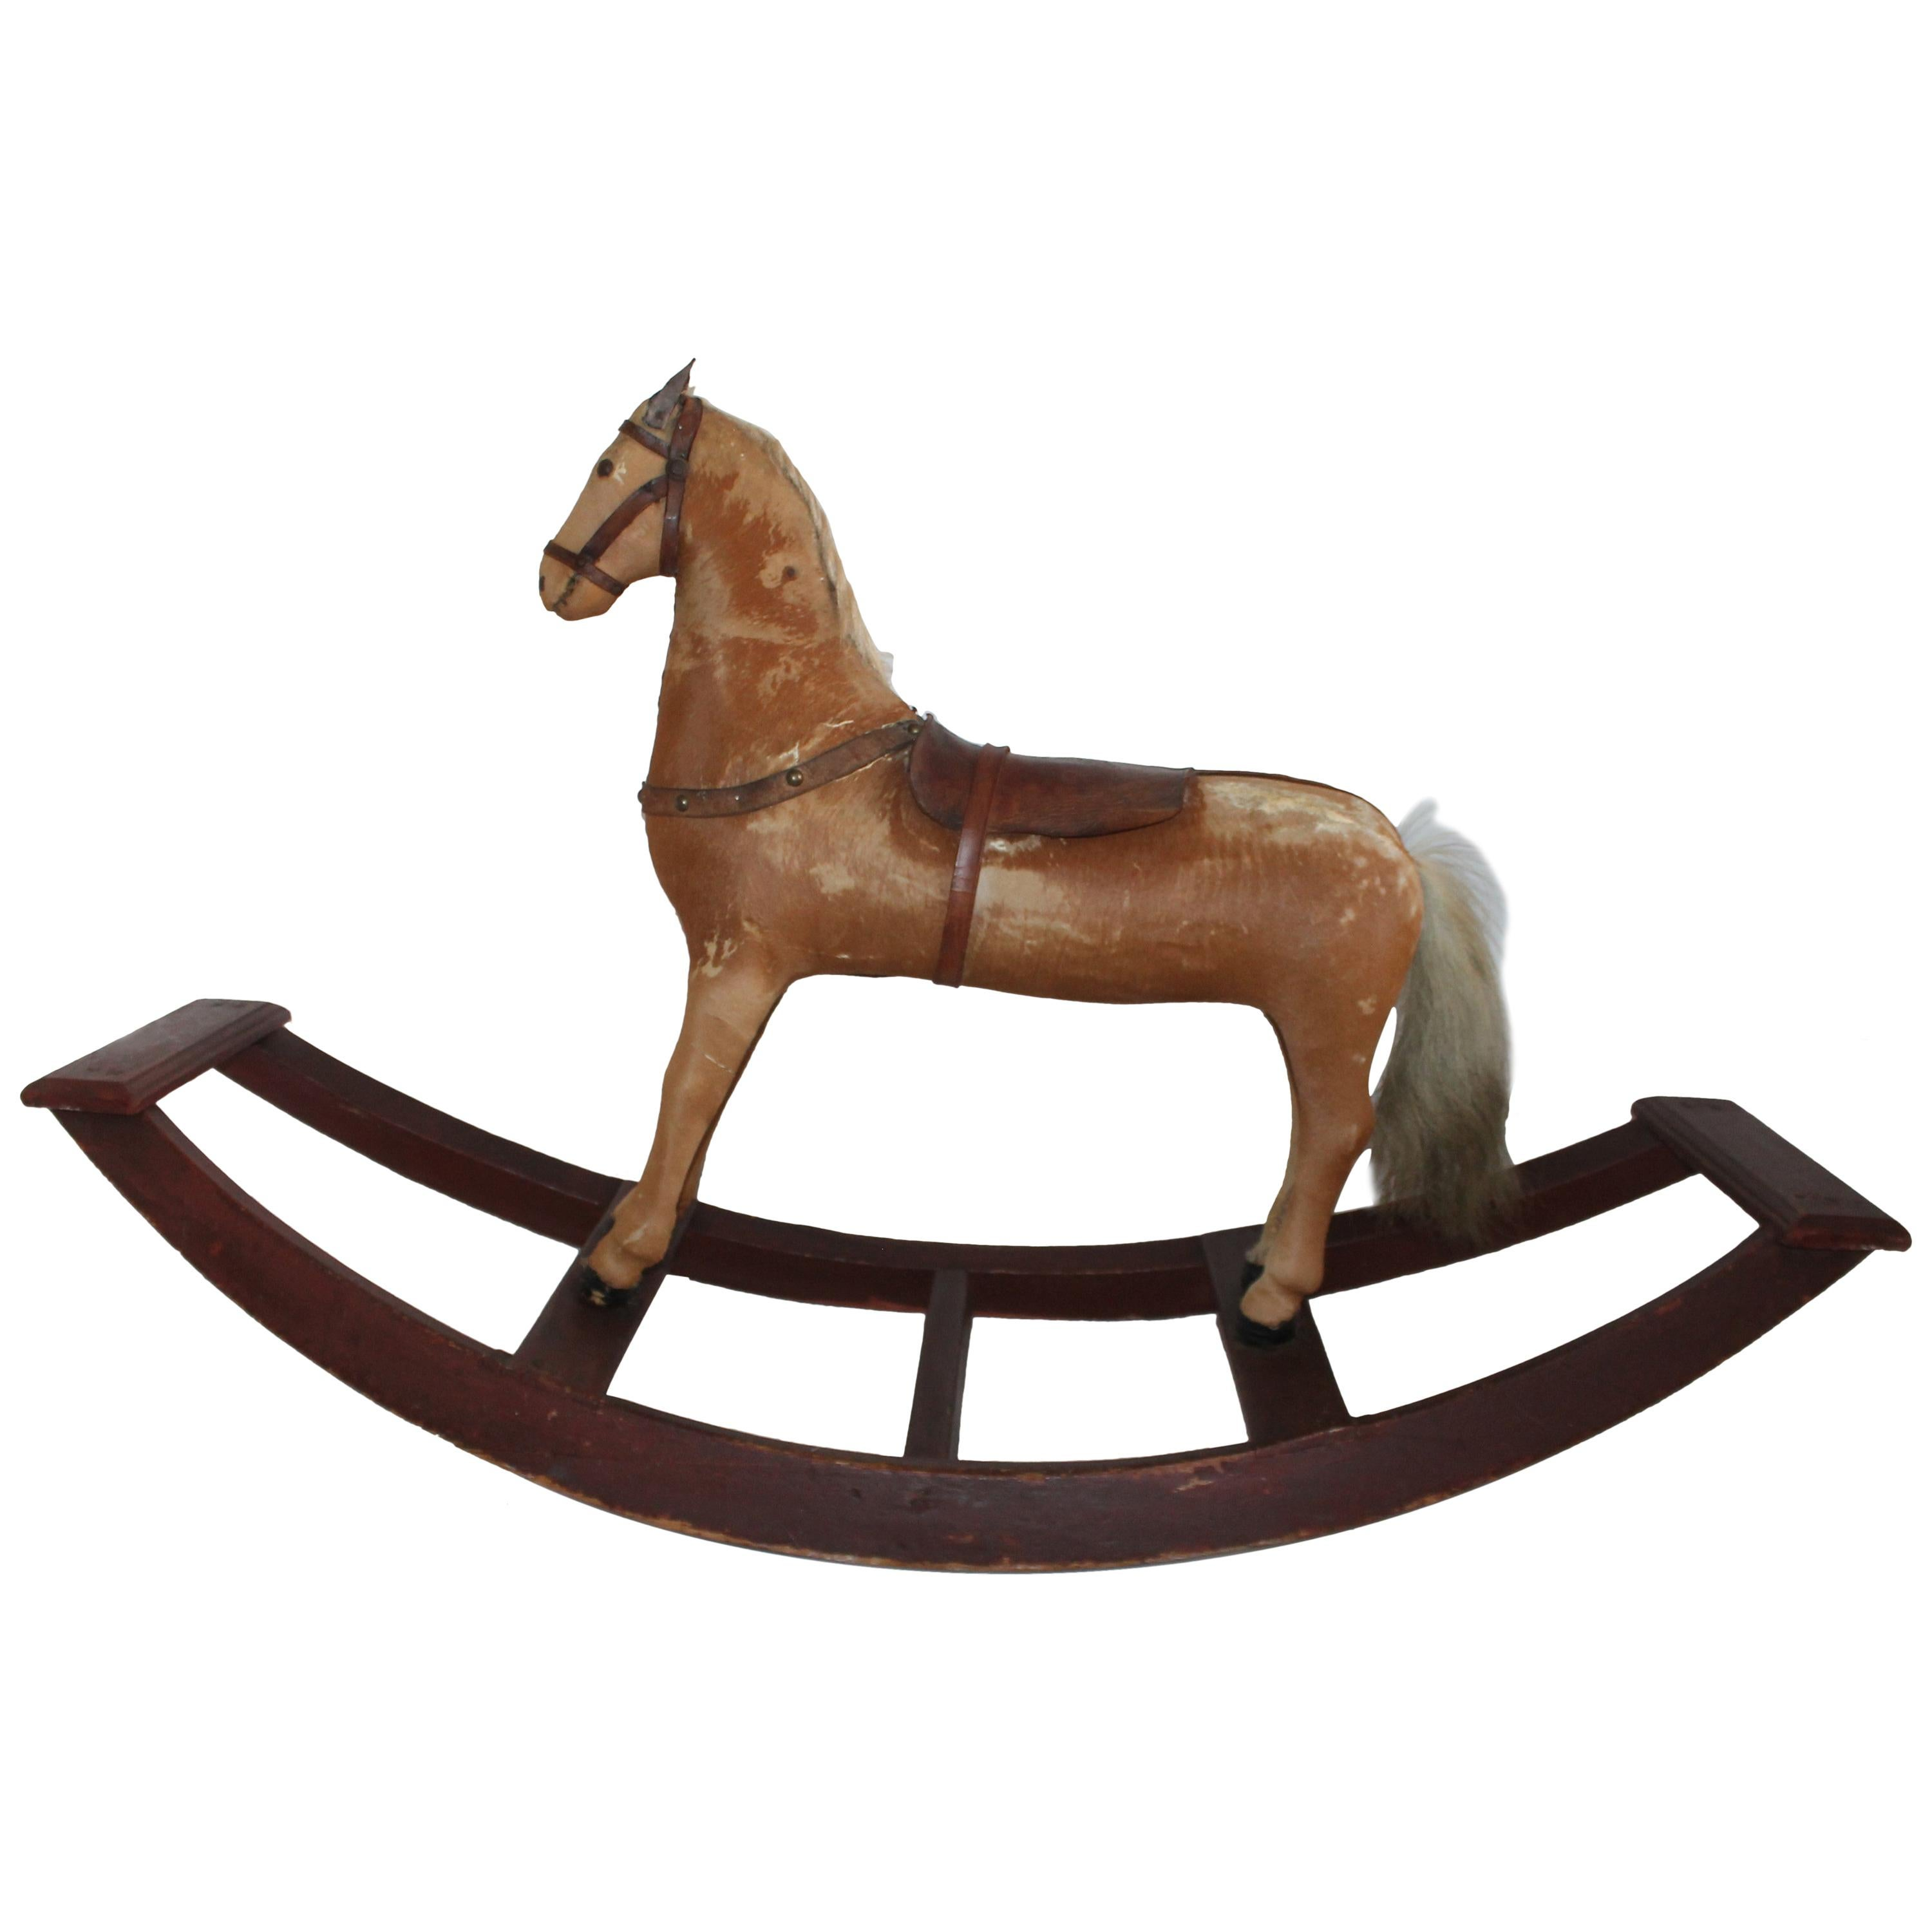 Monumental 19th Century Rocking Horse with Original Paint